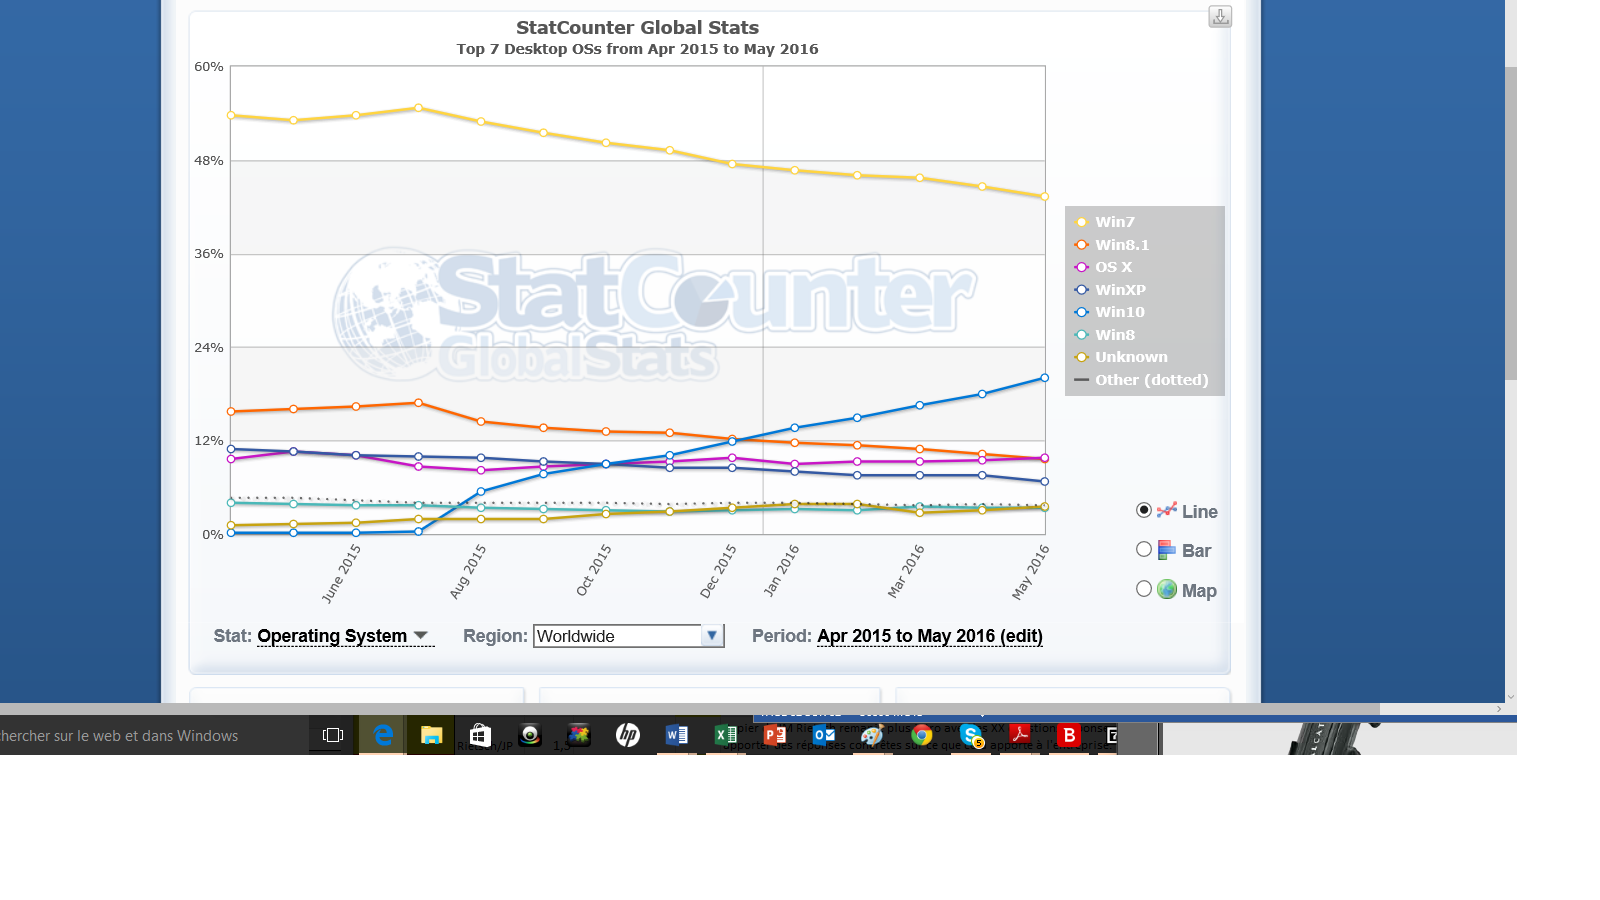 Windows10 Statcounter mai 2016 monde